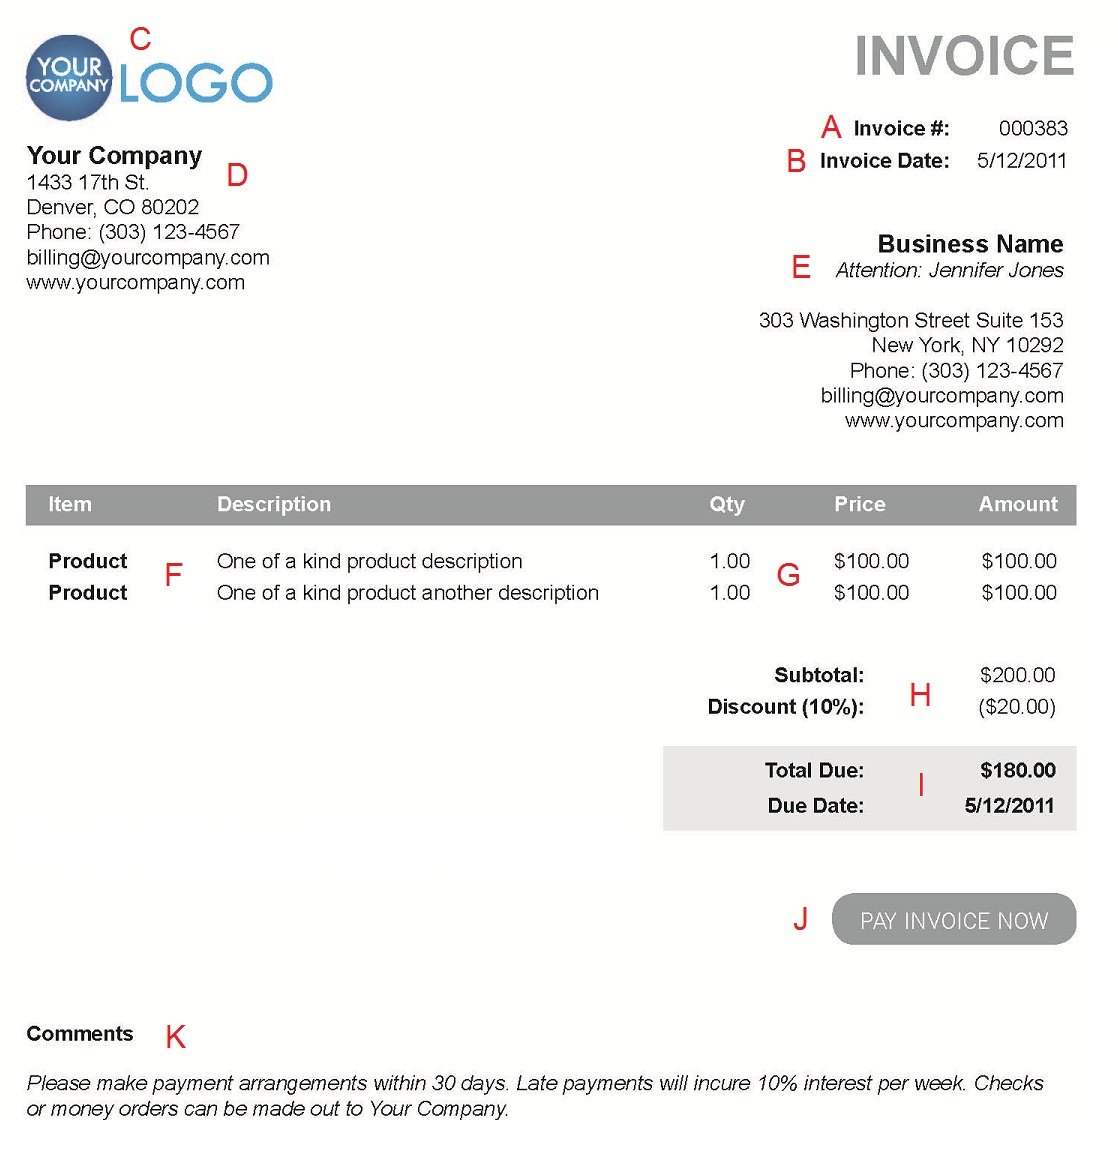 Soulfulpowerus  Unique The  Different Sections Of An Electronic Payment Invoice With Hot A  With Alluring Return Receipt Email Also Hertz Find A Receipt In Addition Platepass Hertz Tolls Receipt And Fake Taxi Receipt Generator As Well As Read Receipt On Gmail Additionally Concurrent Receipt Chapter  From Paysimplecom With Soulfulpowerus  Hot The  Different Sections Of An Electronic Payment Invoice With Alluring A  And Unique Return Receipt Email Also Hertz Find A Receipt In Addition Platepass Hertz Tolls Receipt From Paysimplecom